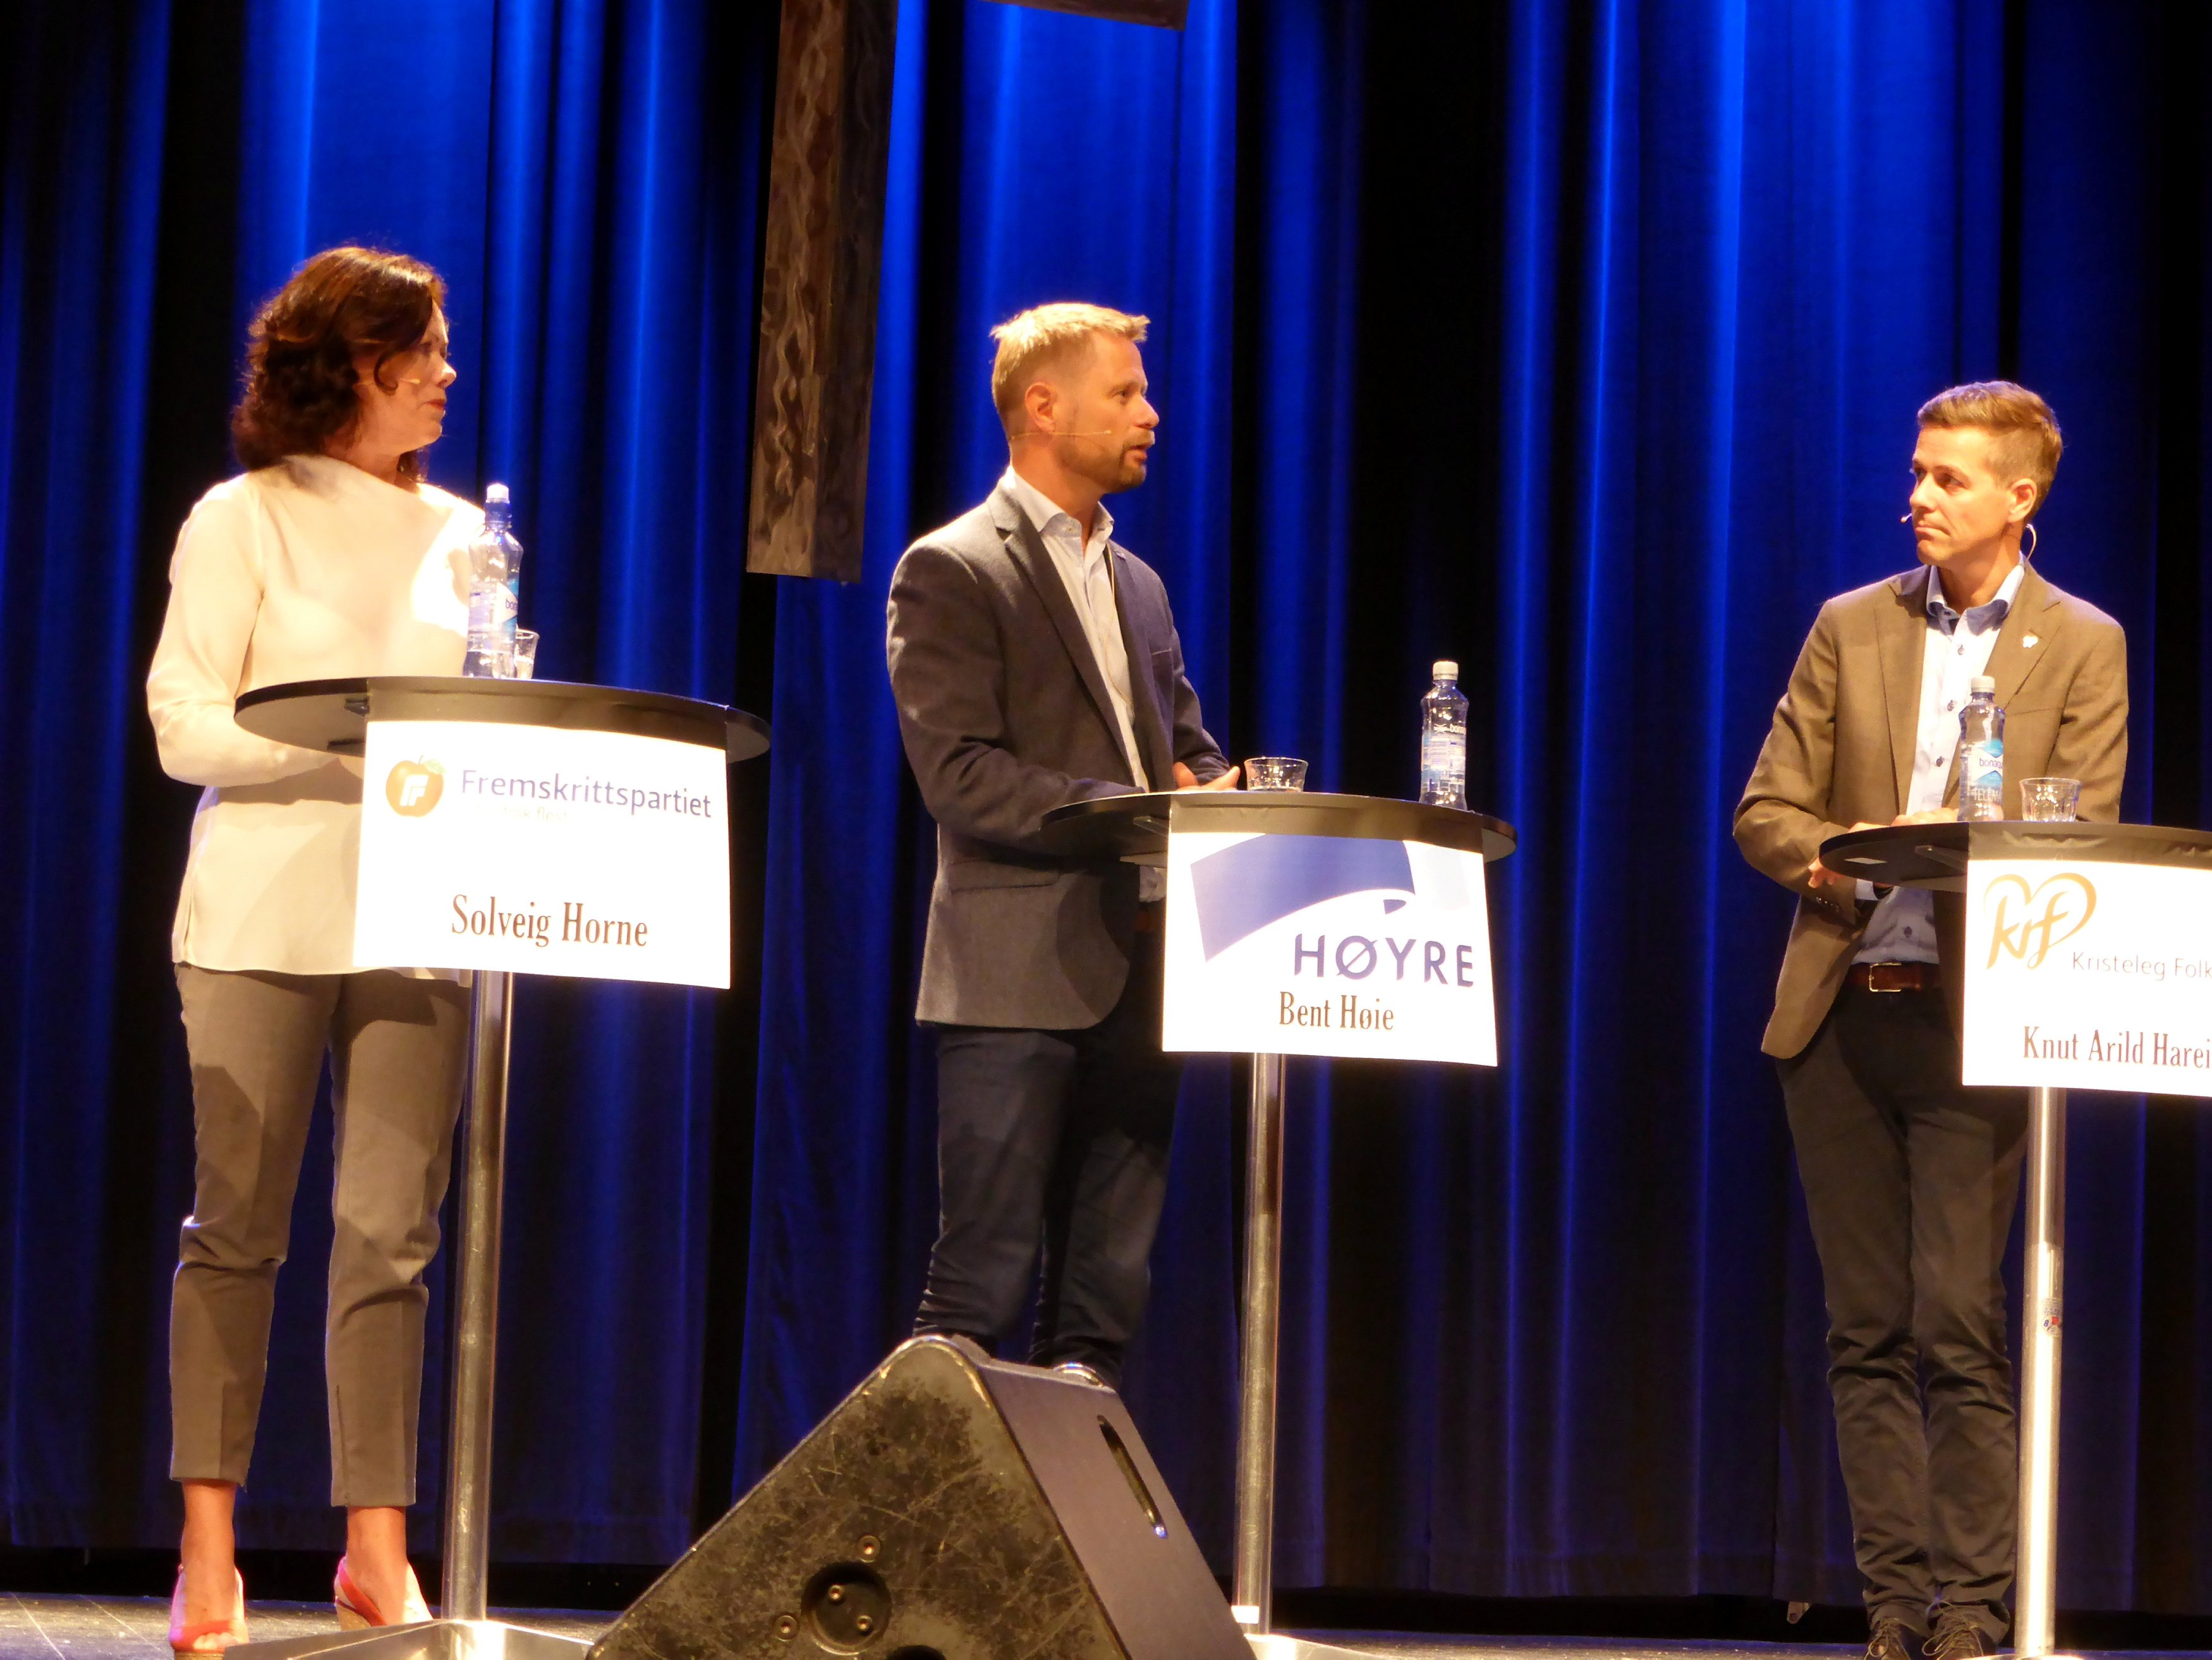 Solveig Horne of Progress Party (L to R), Bent Hoie of Conservatives party and Knut Arild Hareide of Christian Democratic party attend political debate in Stavanger, Norway August 27, 2017. (Gwladys Fouche / Reuters)